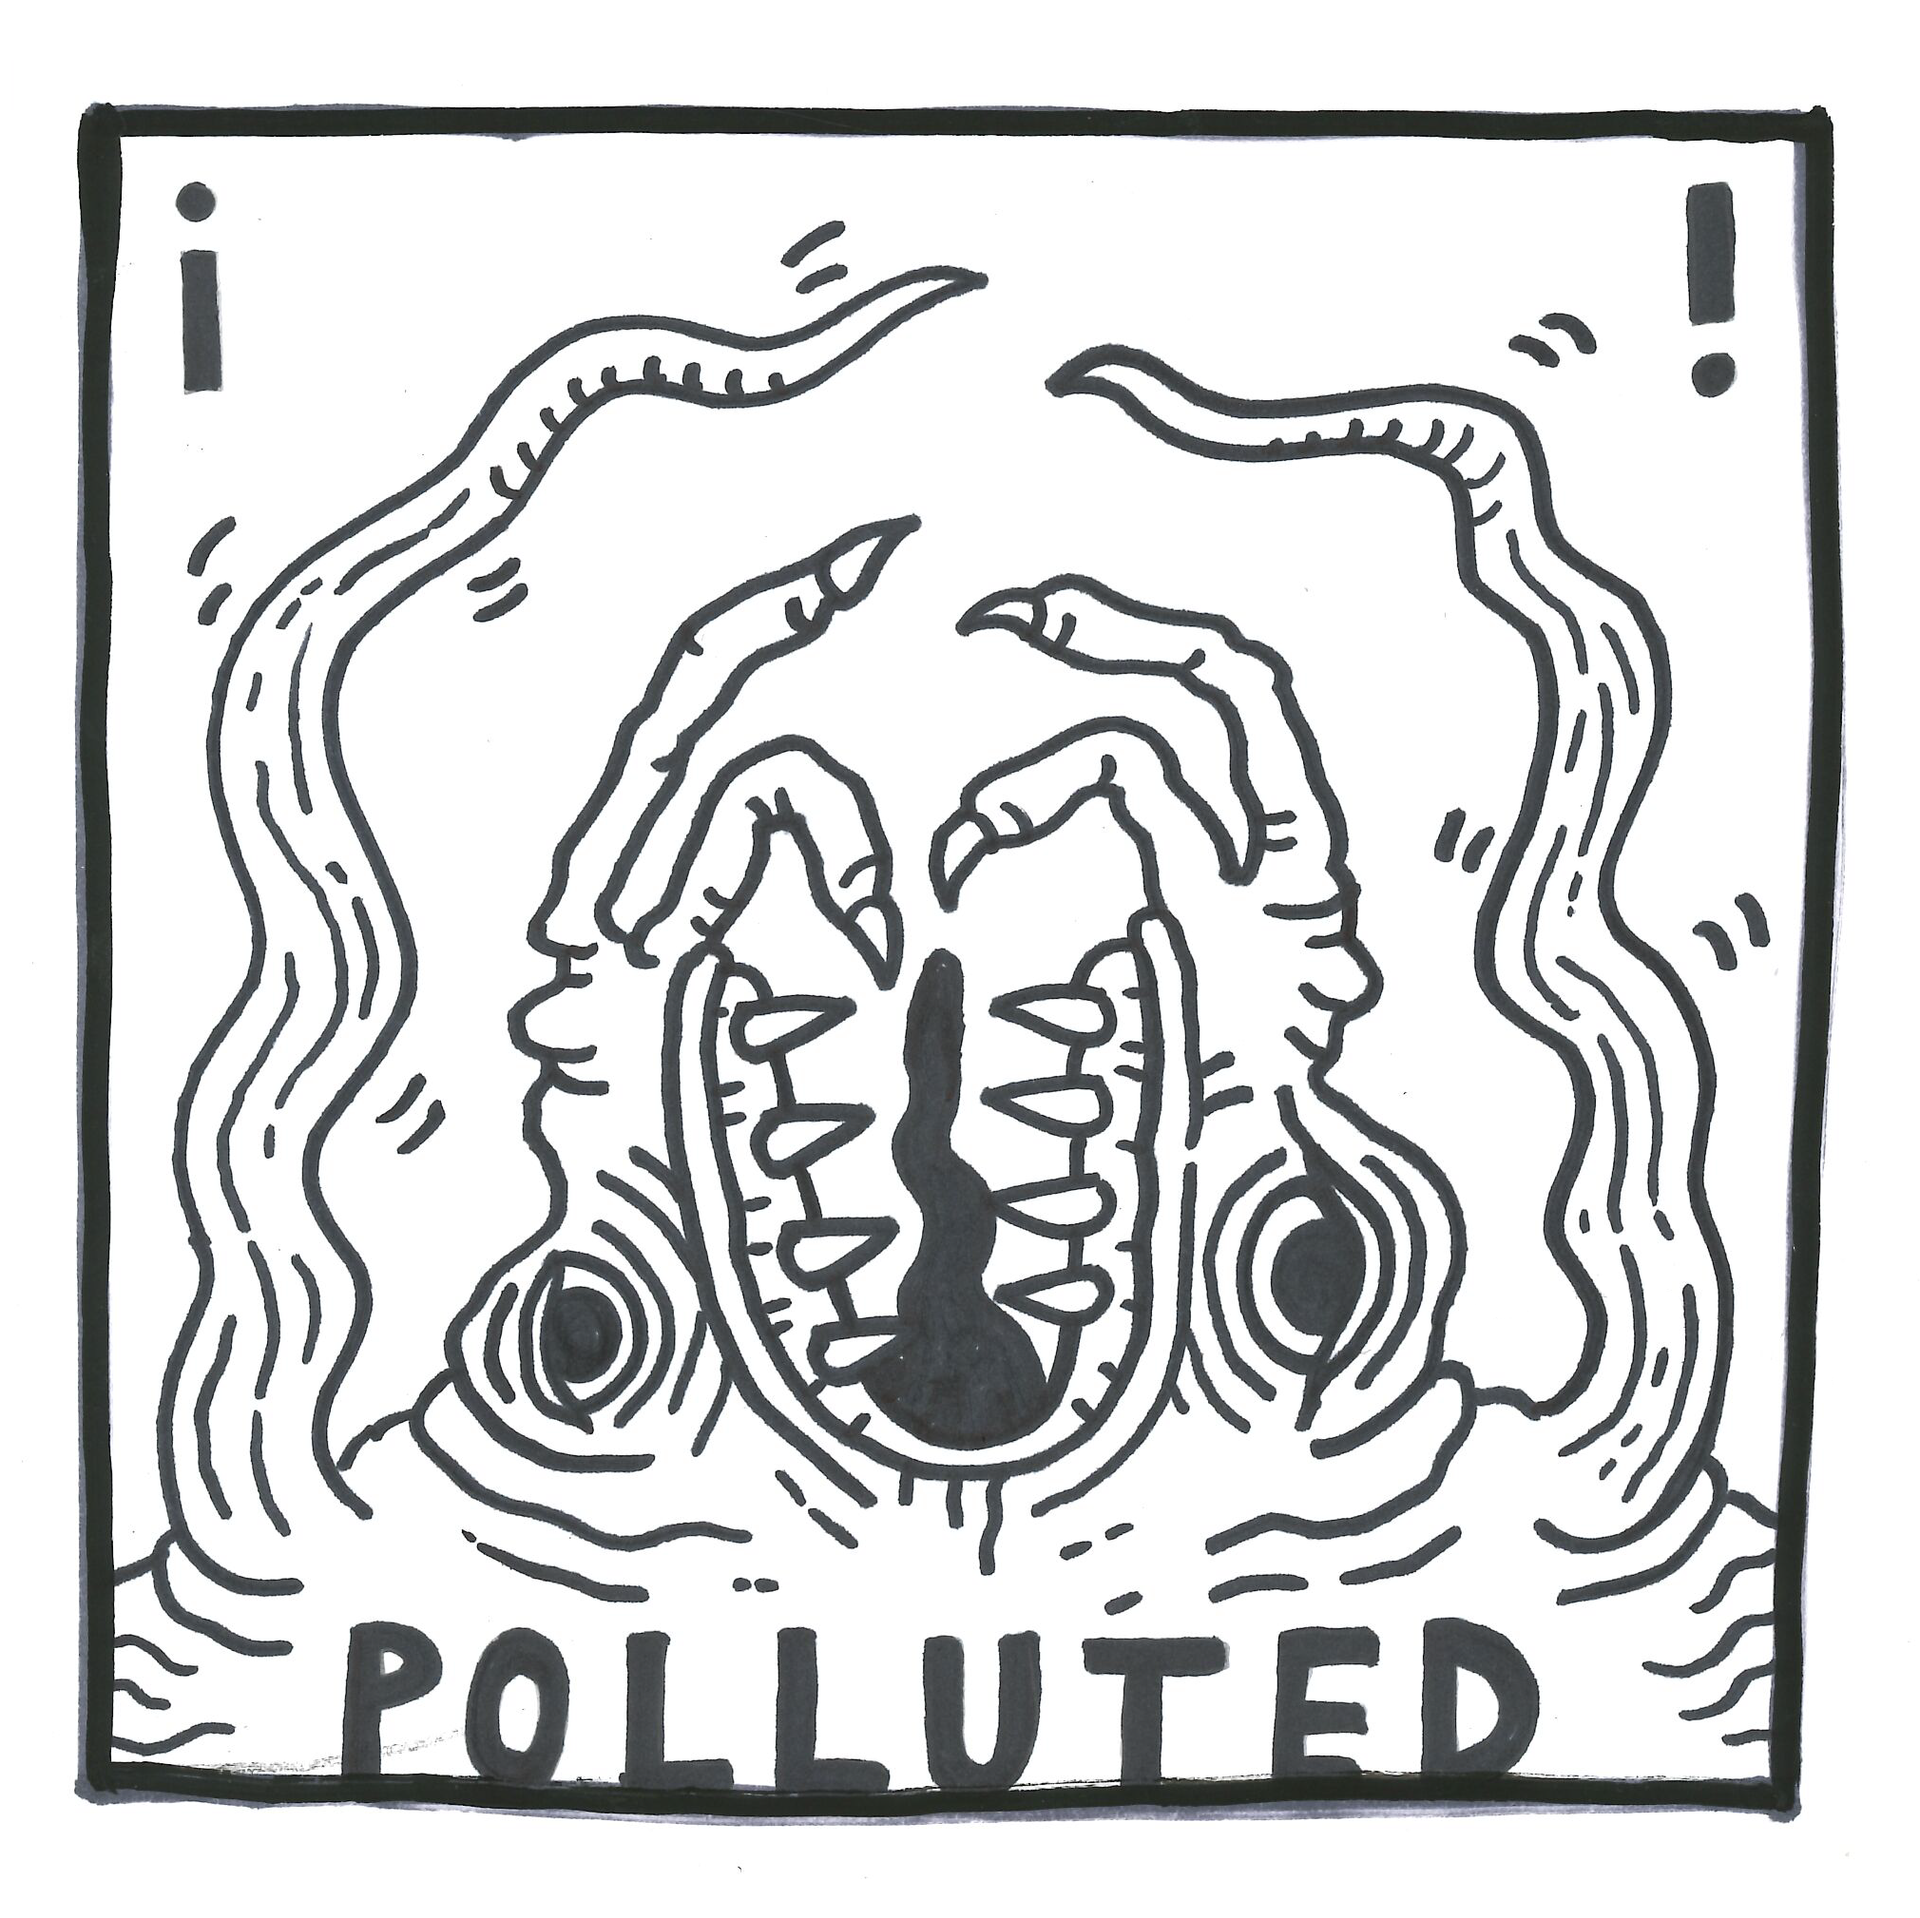 Polluted